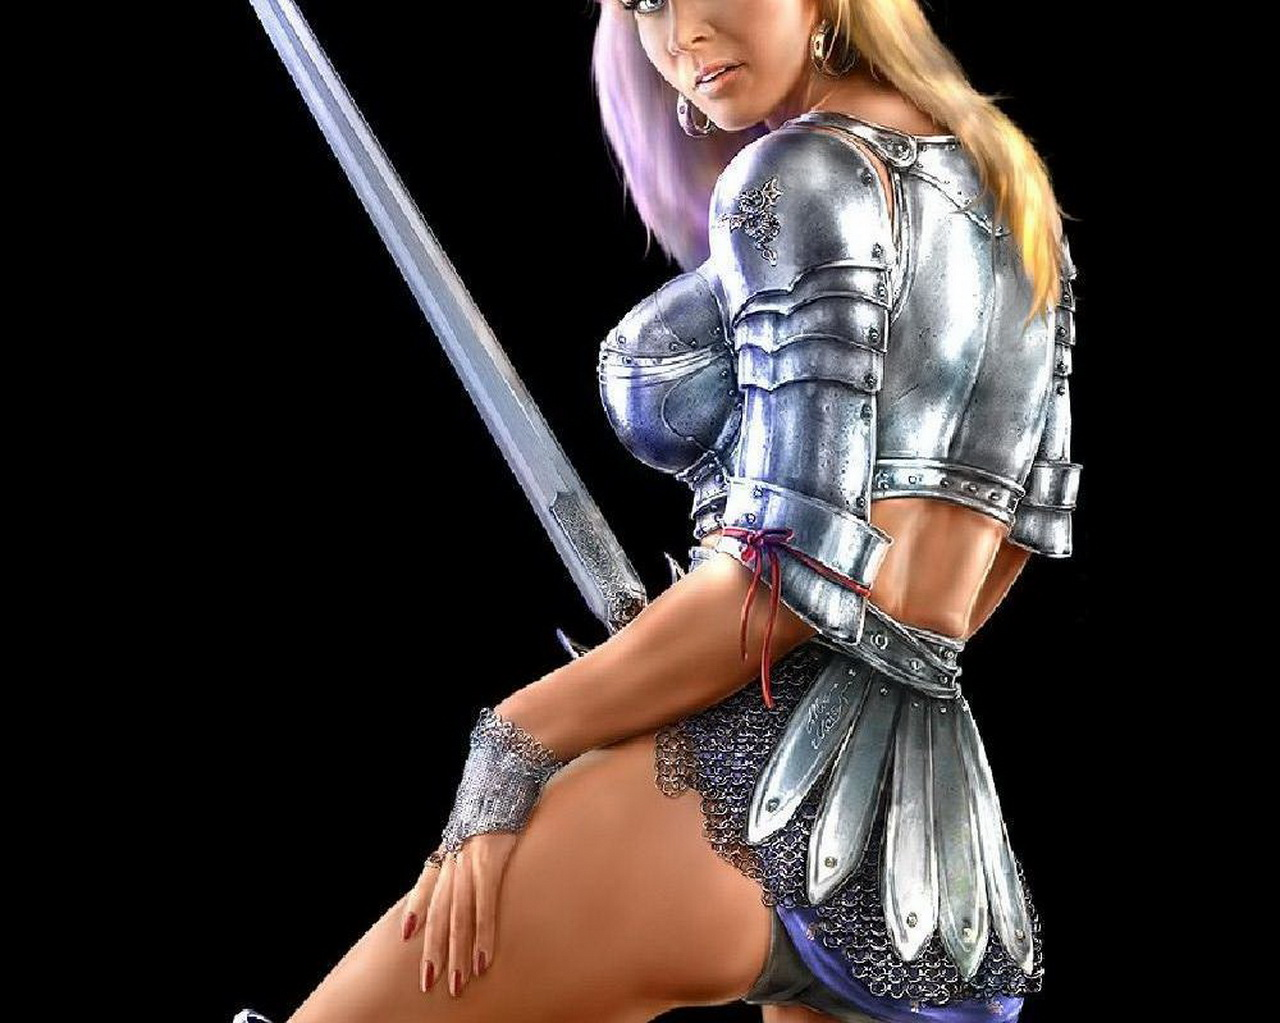 Warrior Women - Female fantasy art part 2